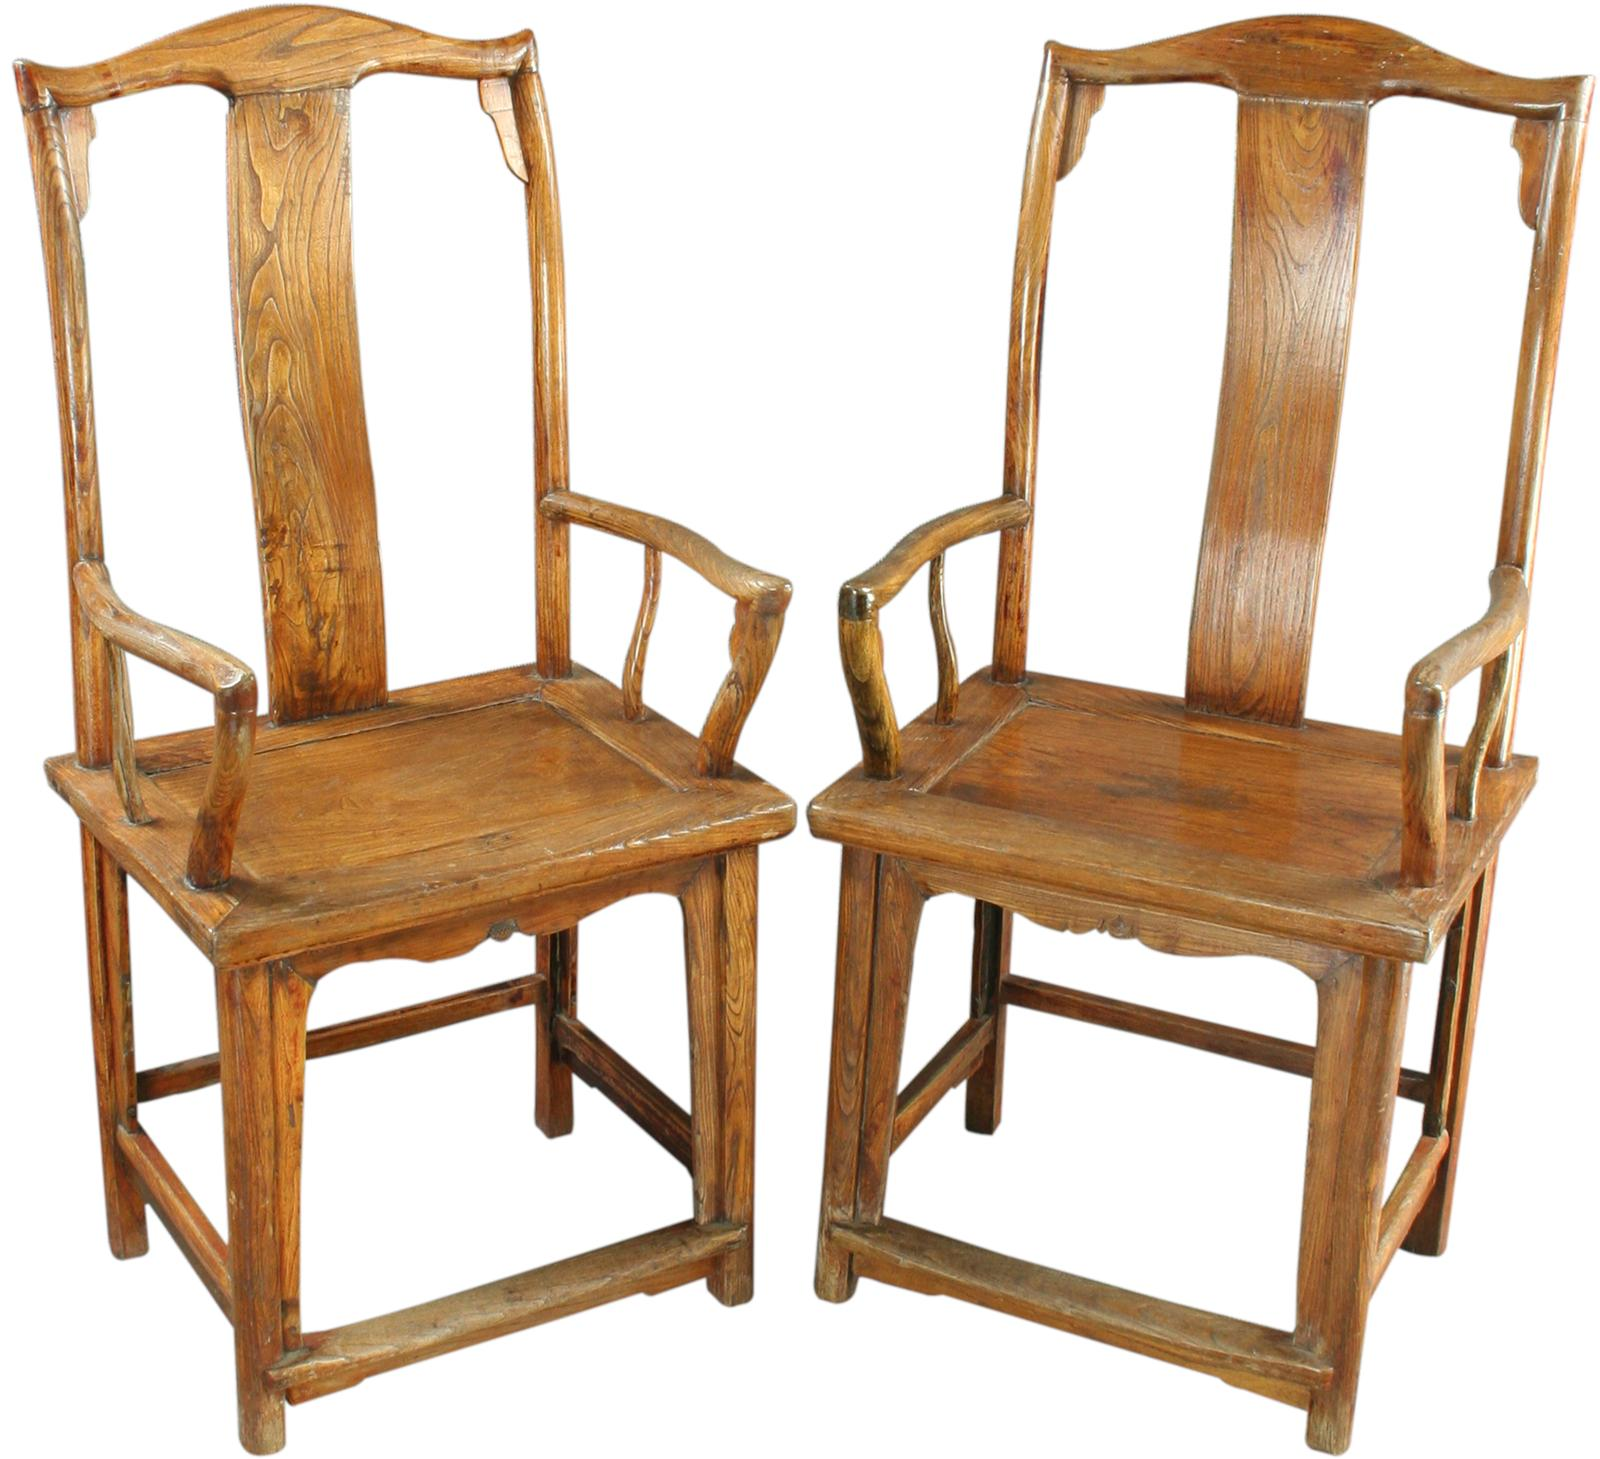 Ebay Accent Chairs: PAIR ANTIQUE CHINESE OFFICIAL'S ARMCHAIRS ACCENT CHAIRS